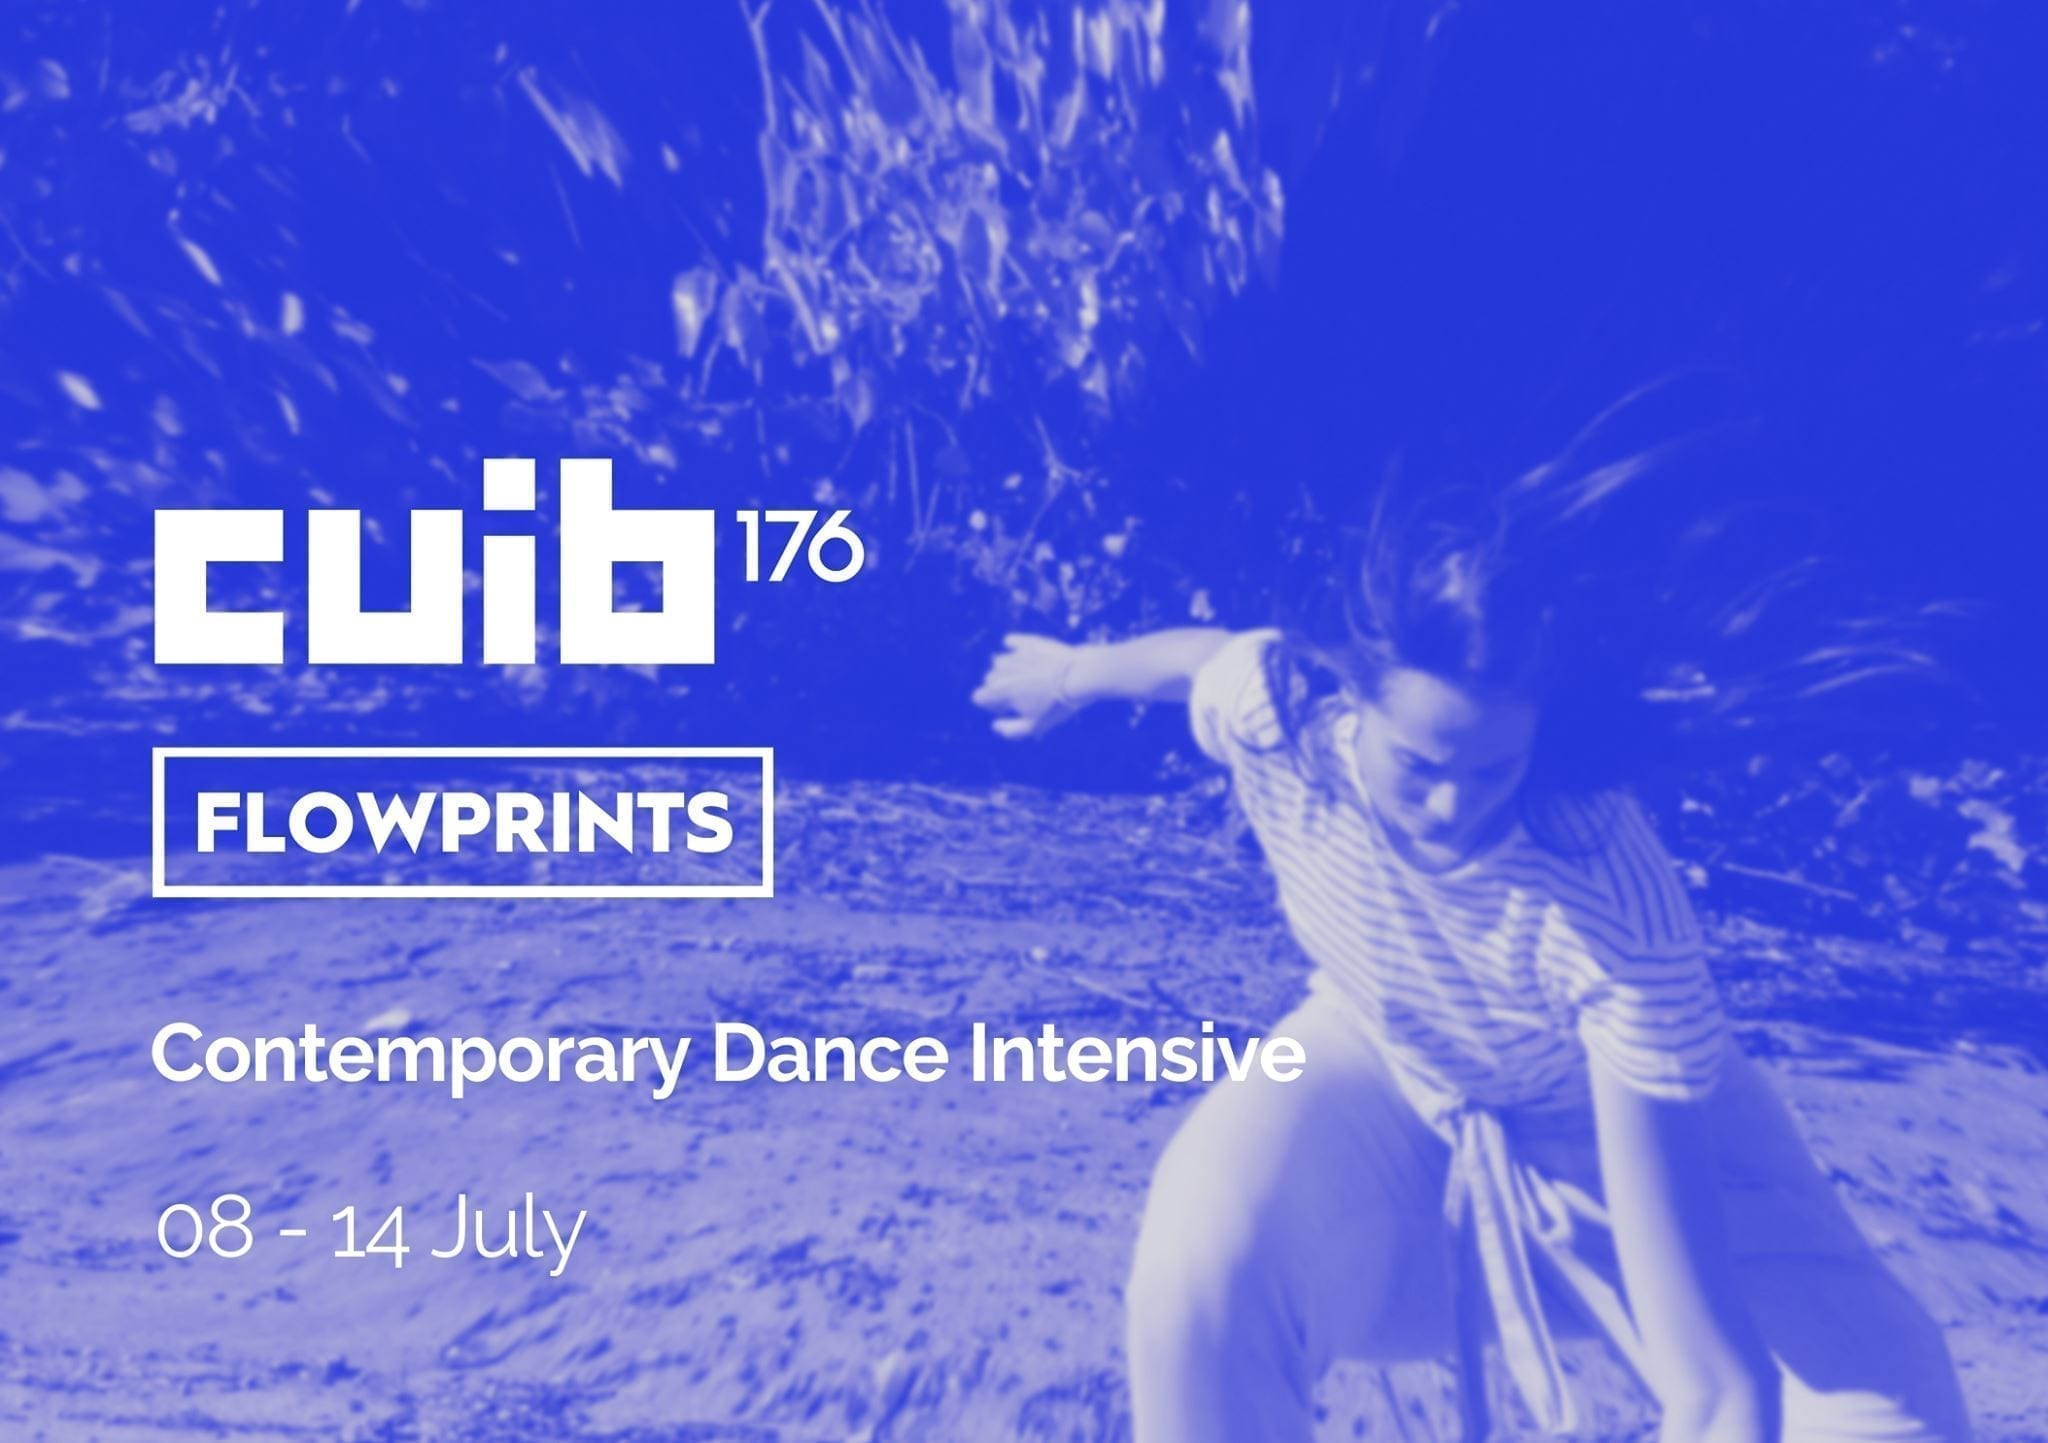 Flowprints - Contemporary Dance Intensive. Nature session